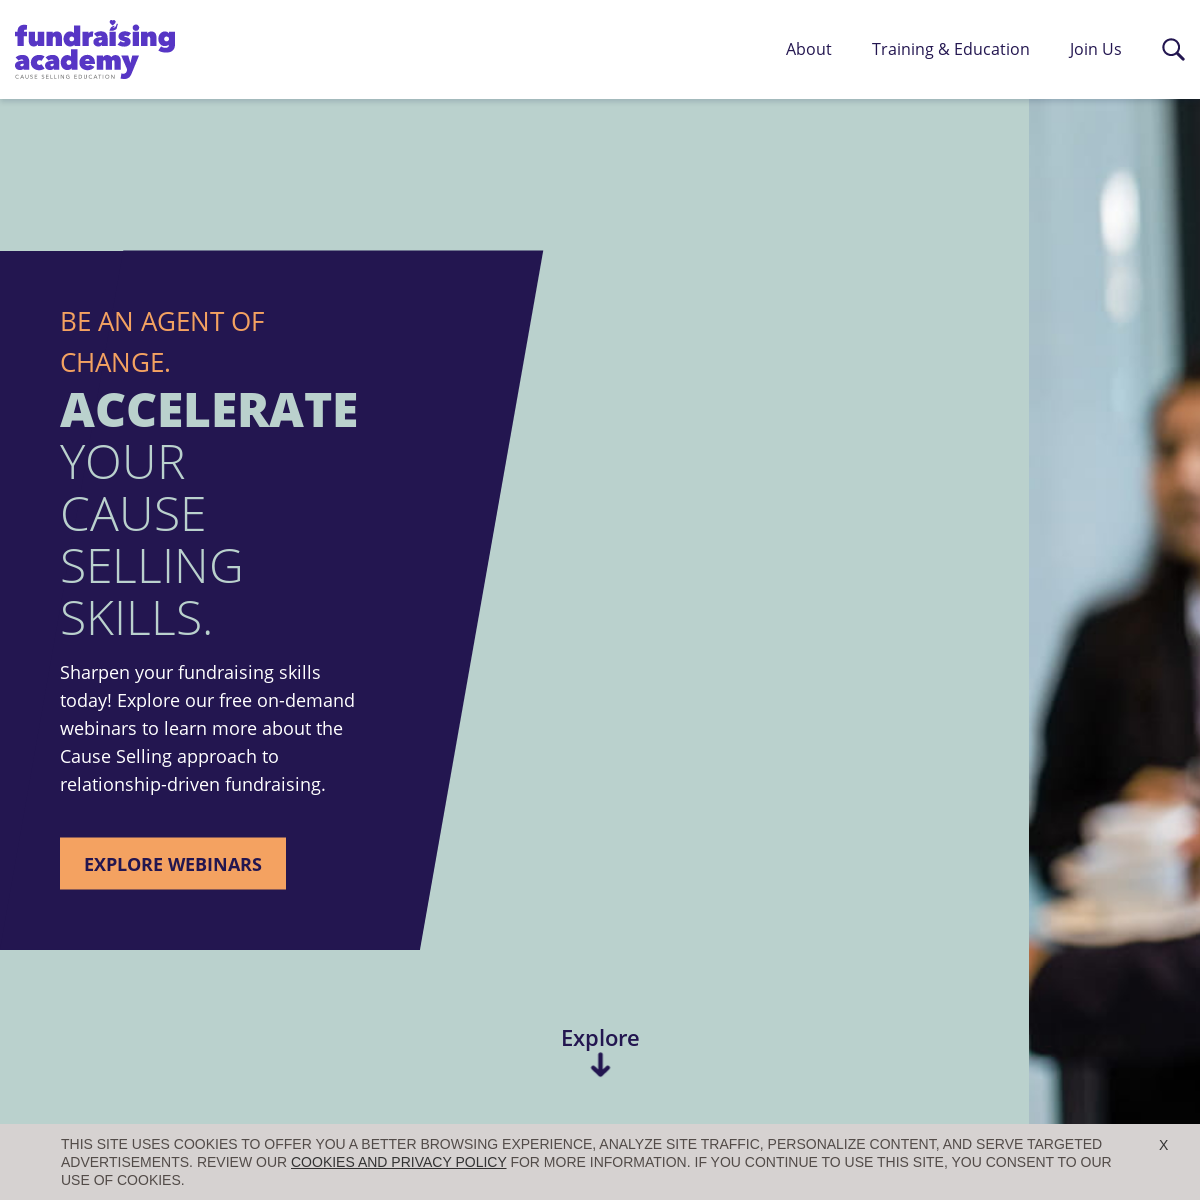 Home - Fundraising Academy